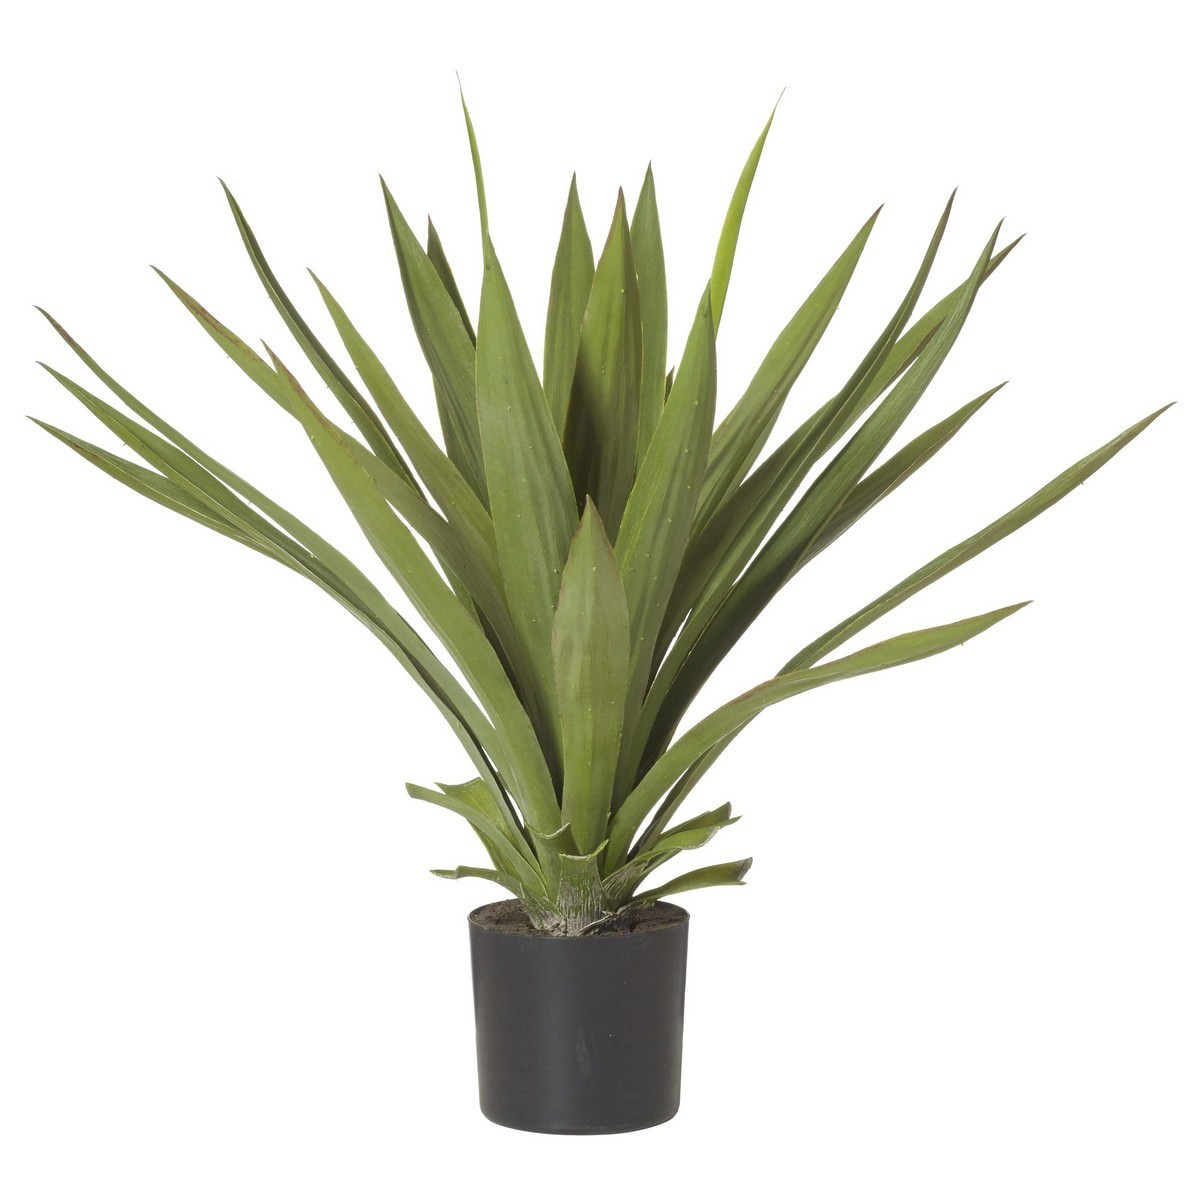 Potted Artificial Pineapple Agave, 60cm